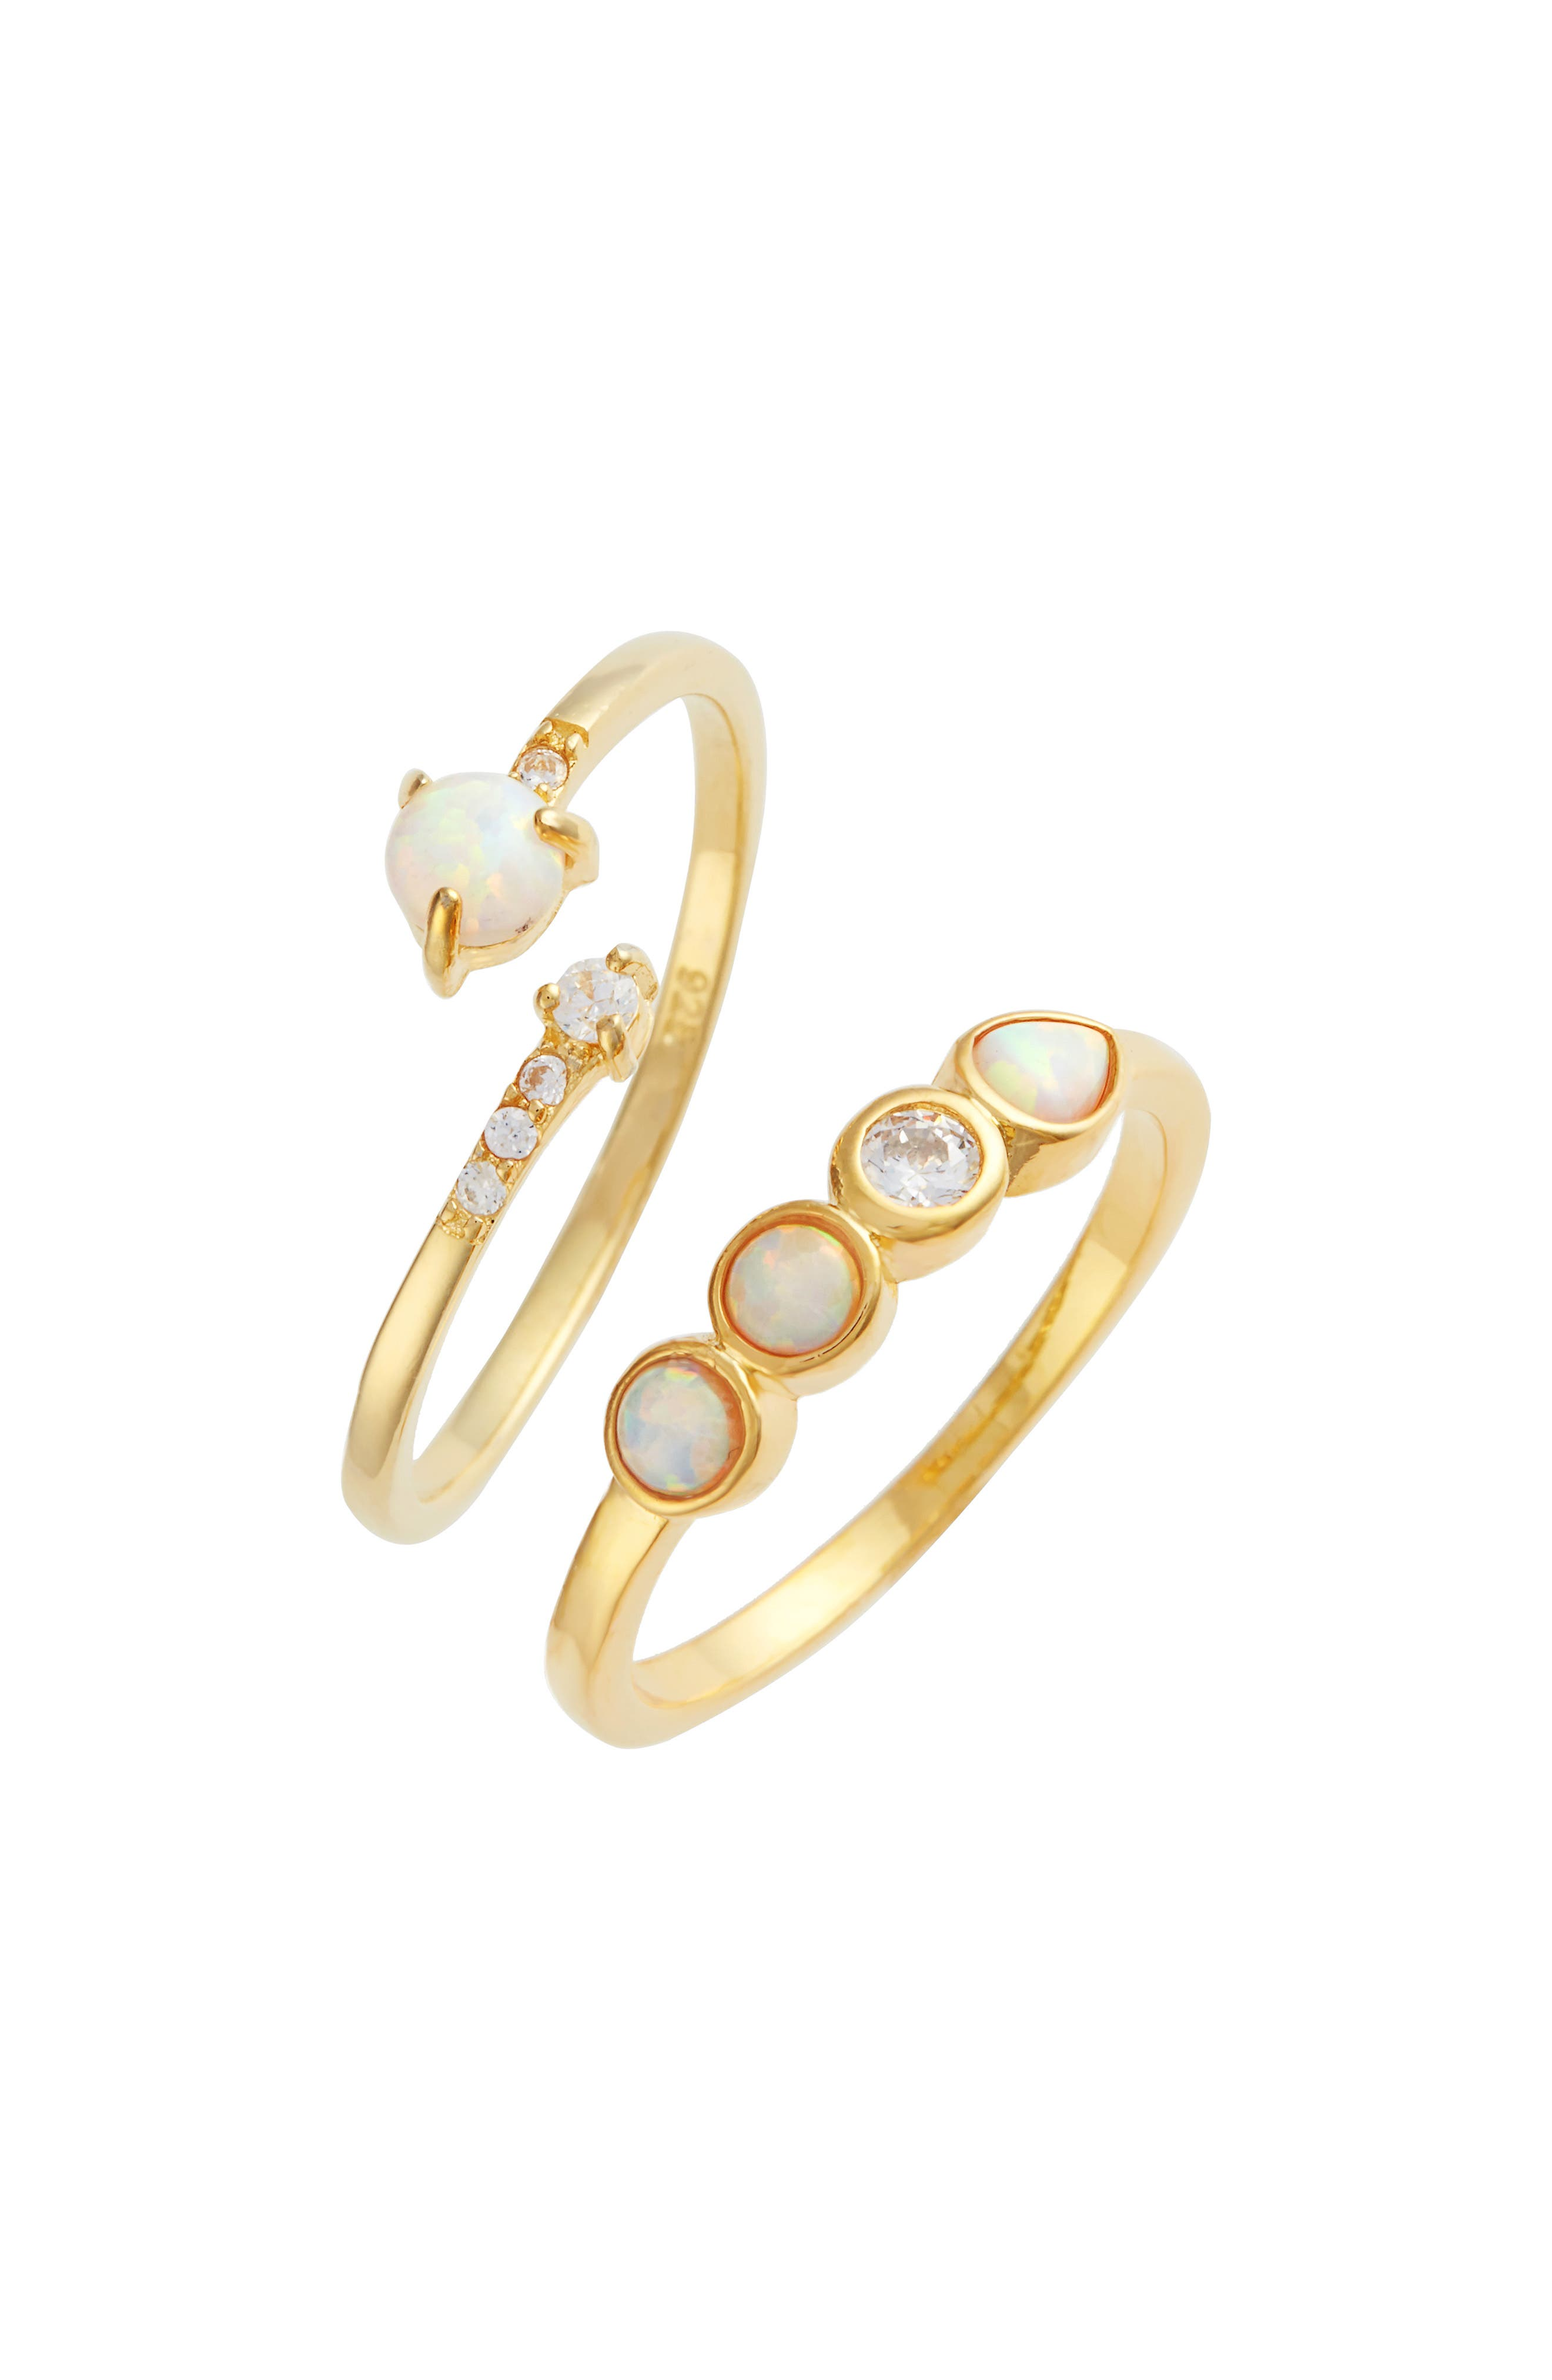 Lydia Set of 2 Opal & Crystal Rings,                         Main,                         color, Gold